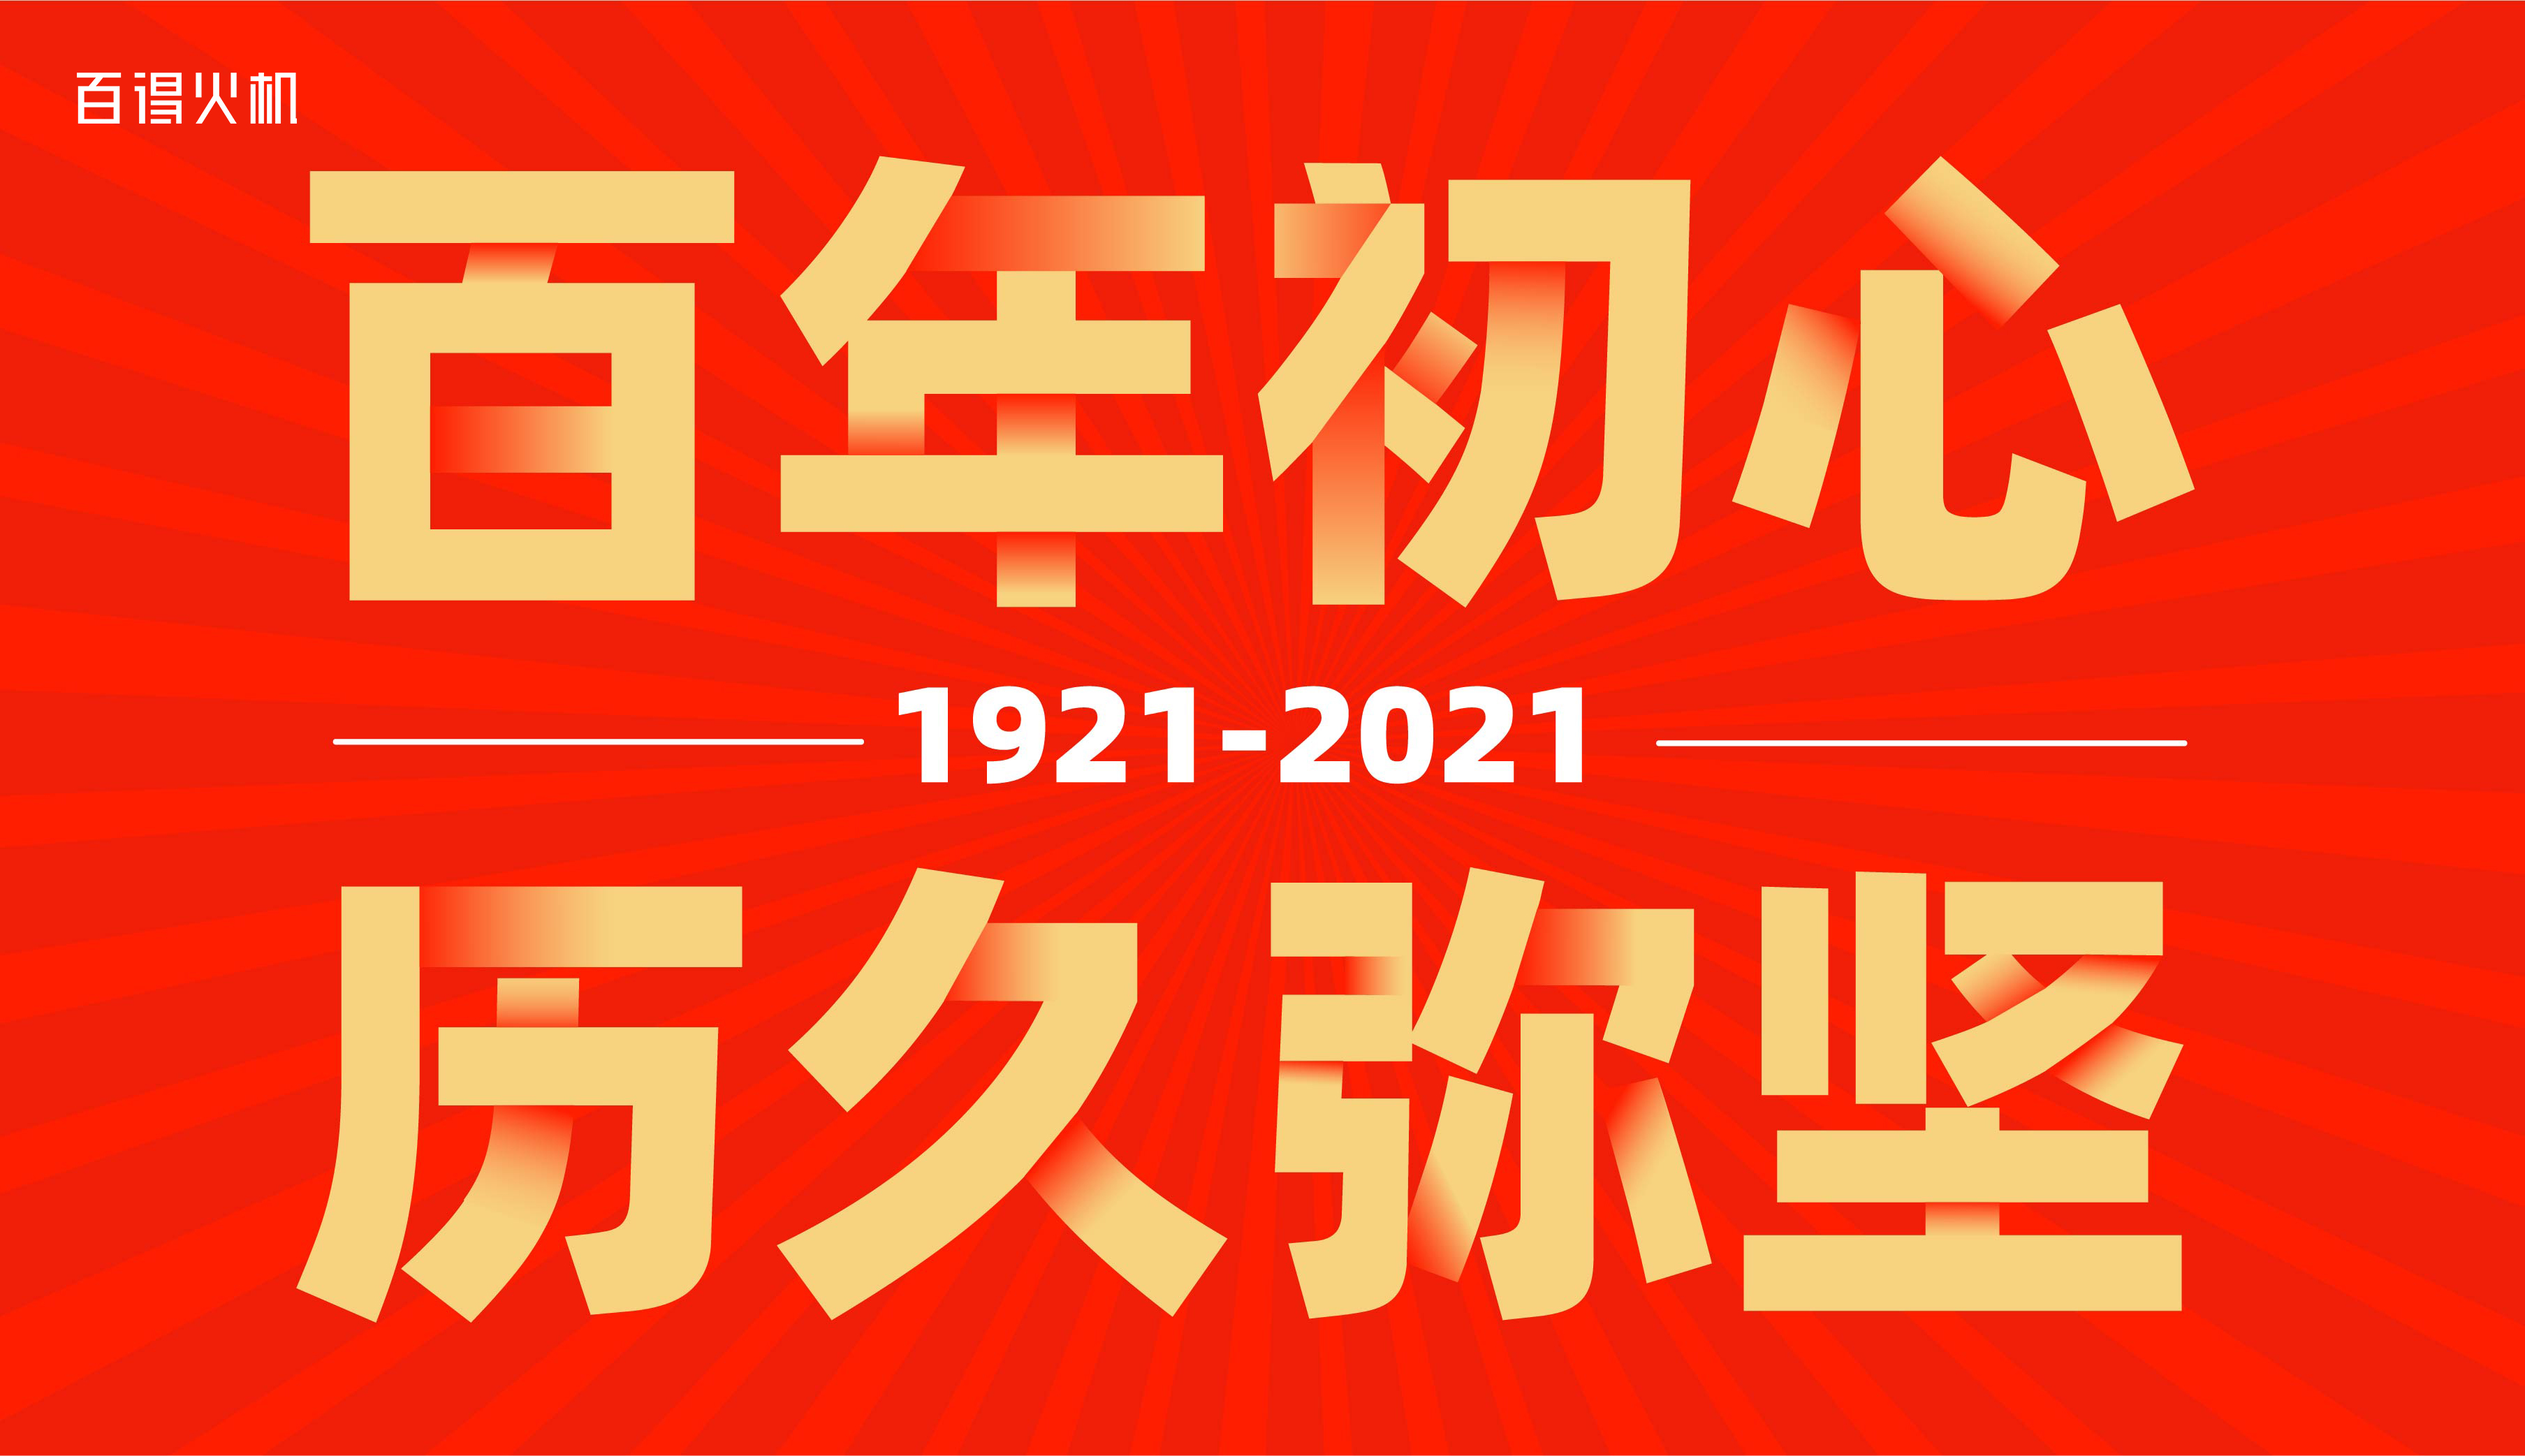 Happy 100th birthday of the Communist Party of China